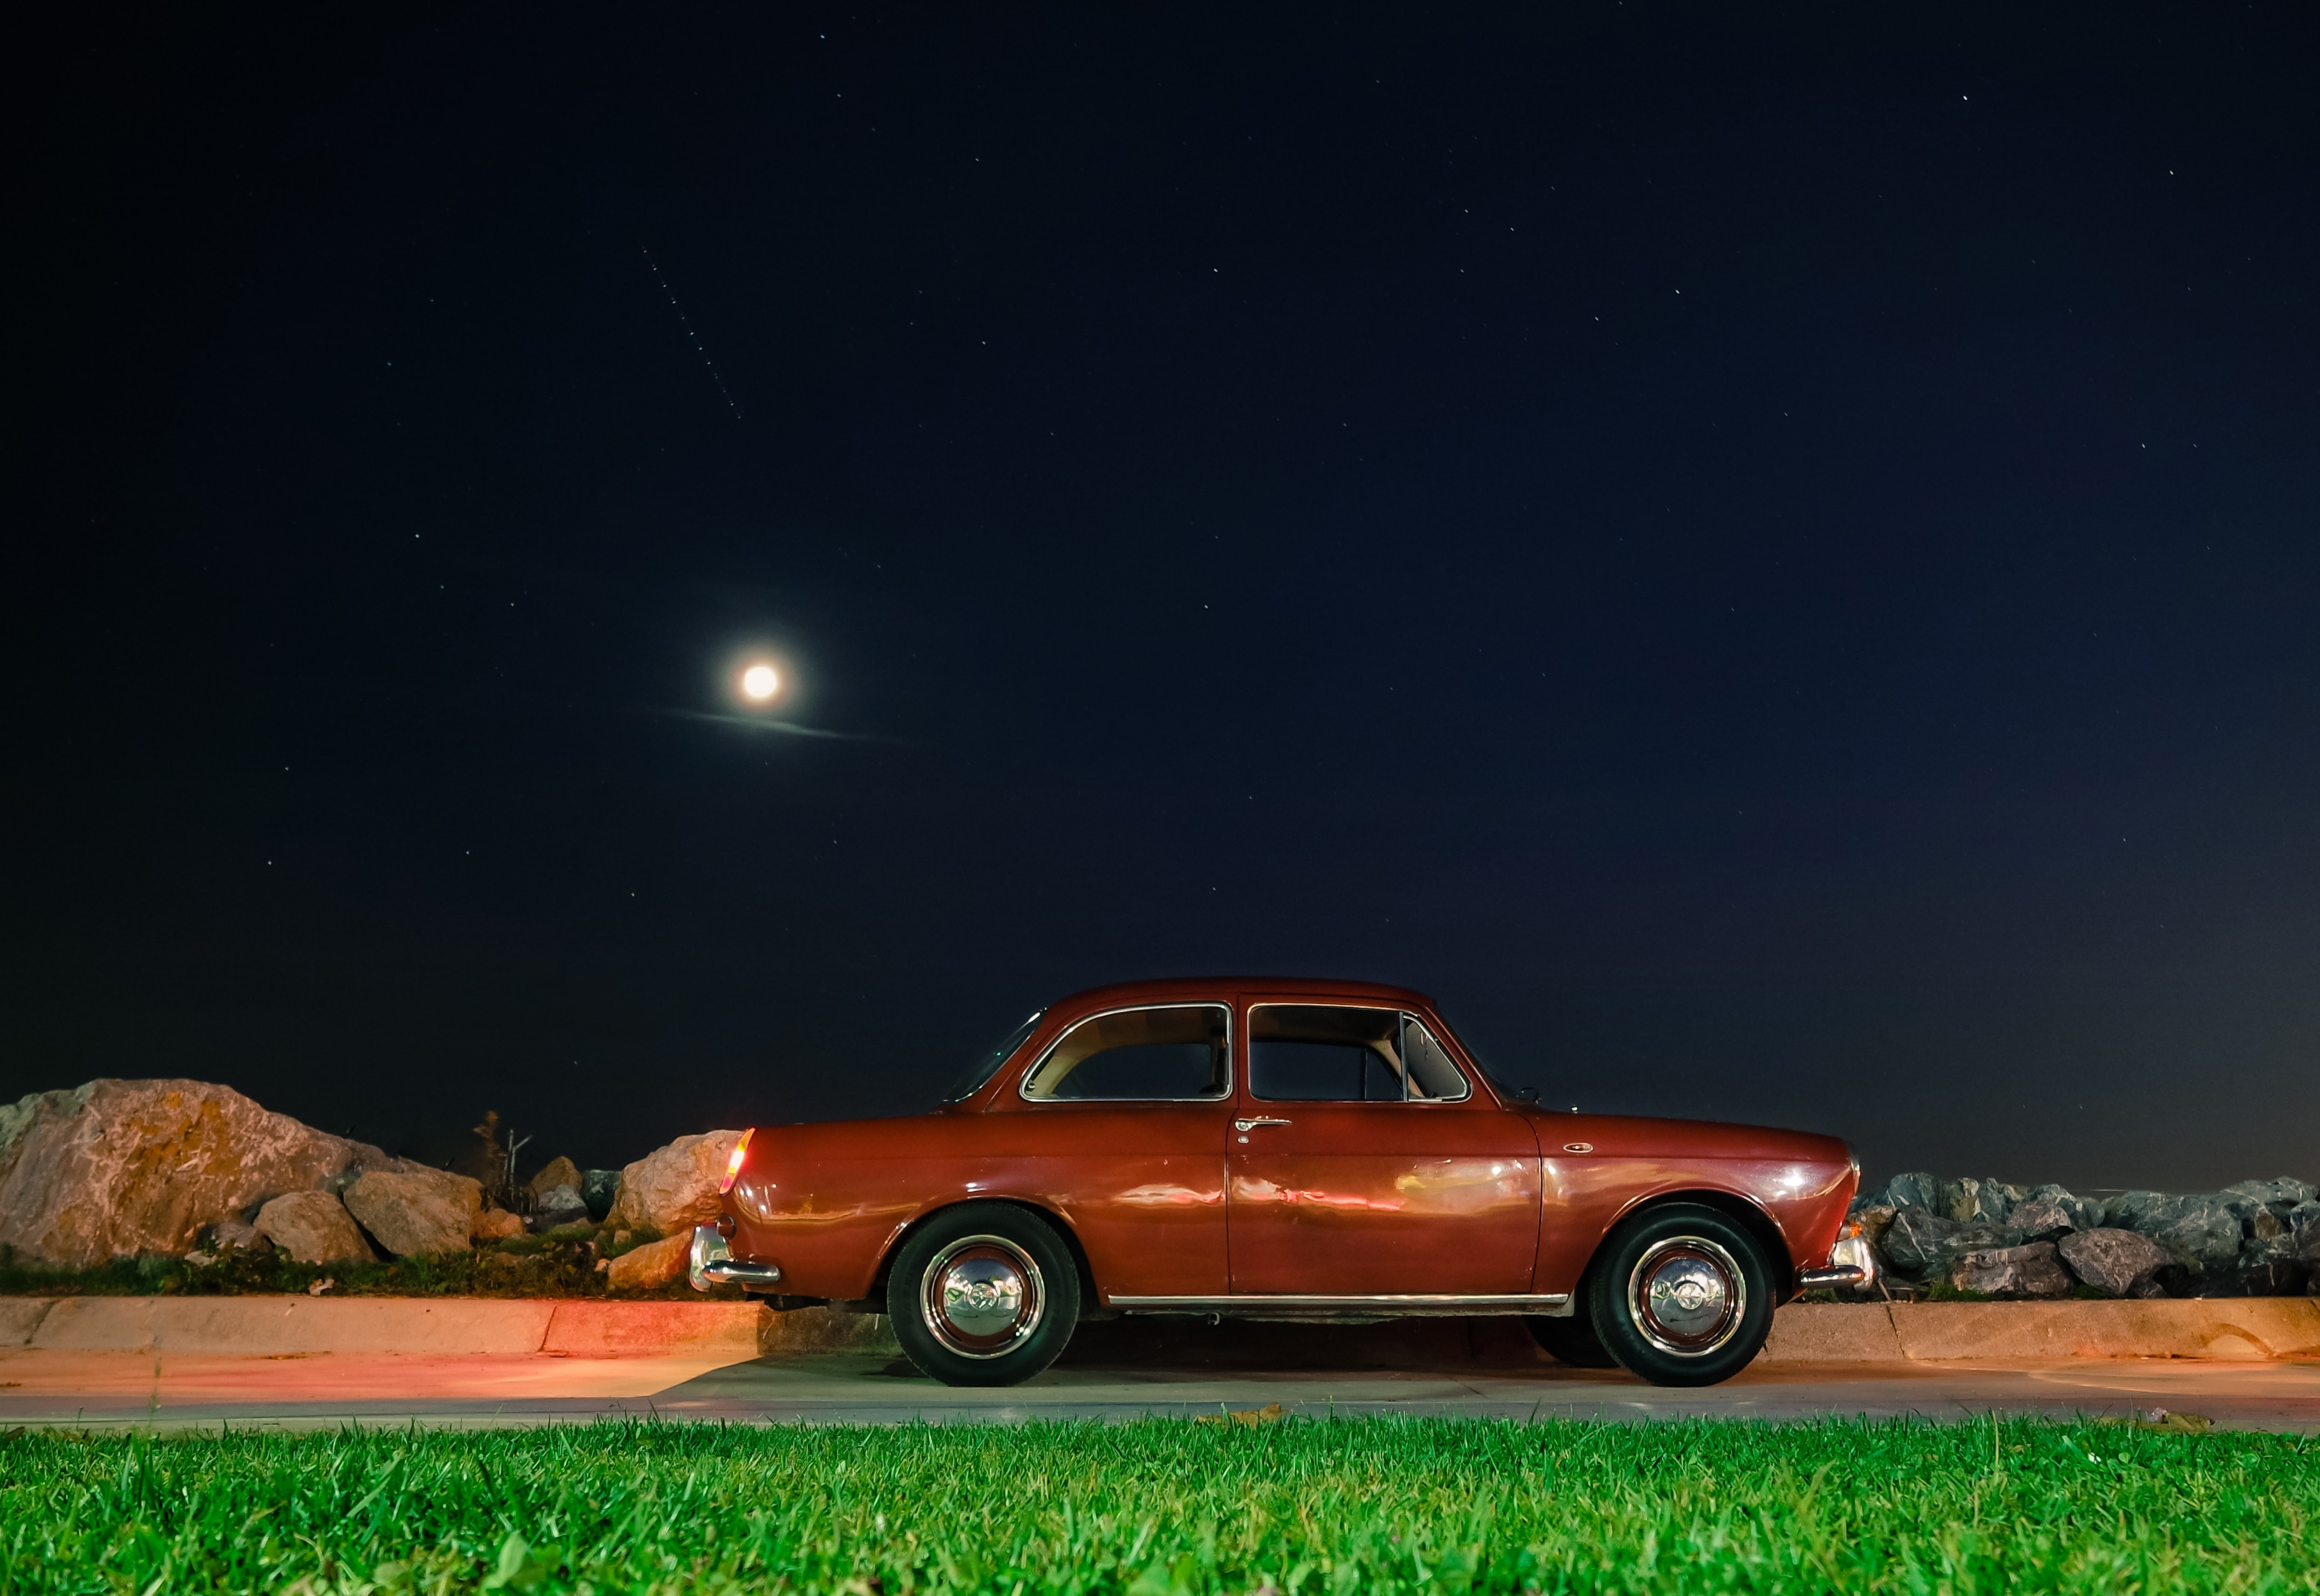 Red Classic Coupe, Car, Classic car, Drive, Moon, HQ Photo